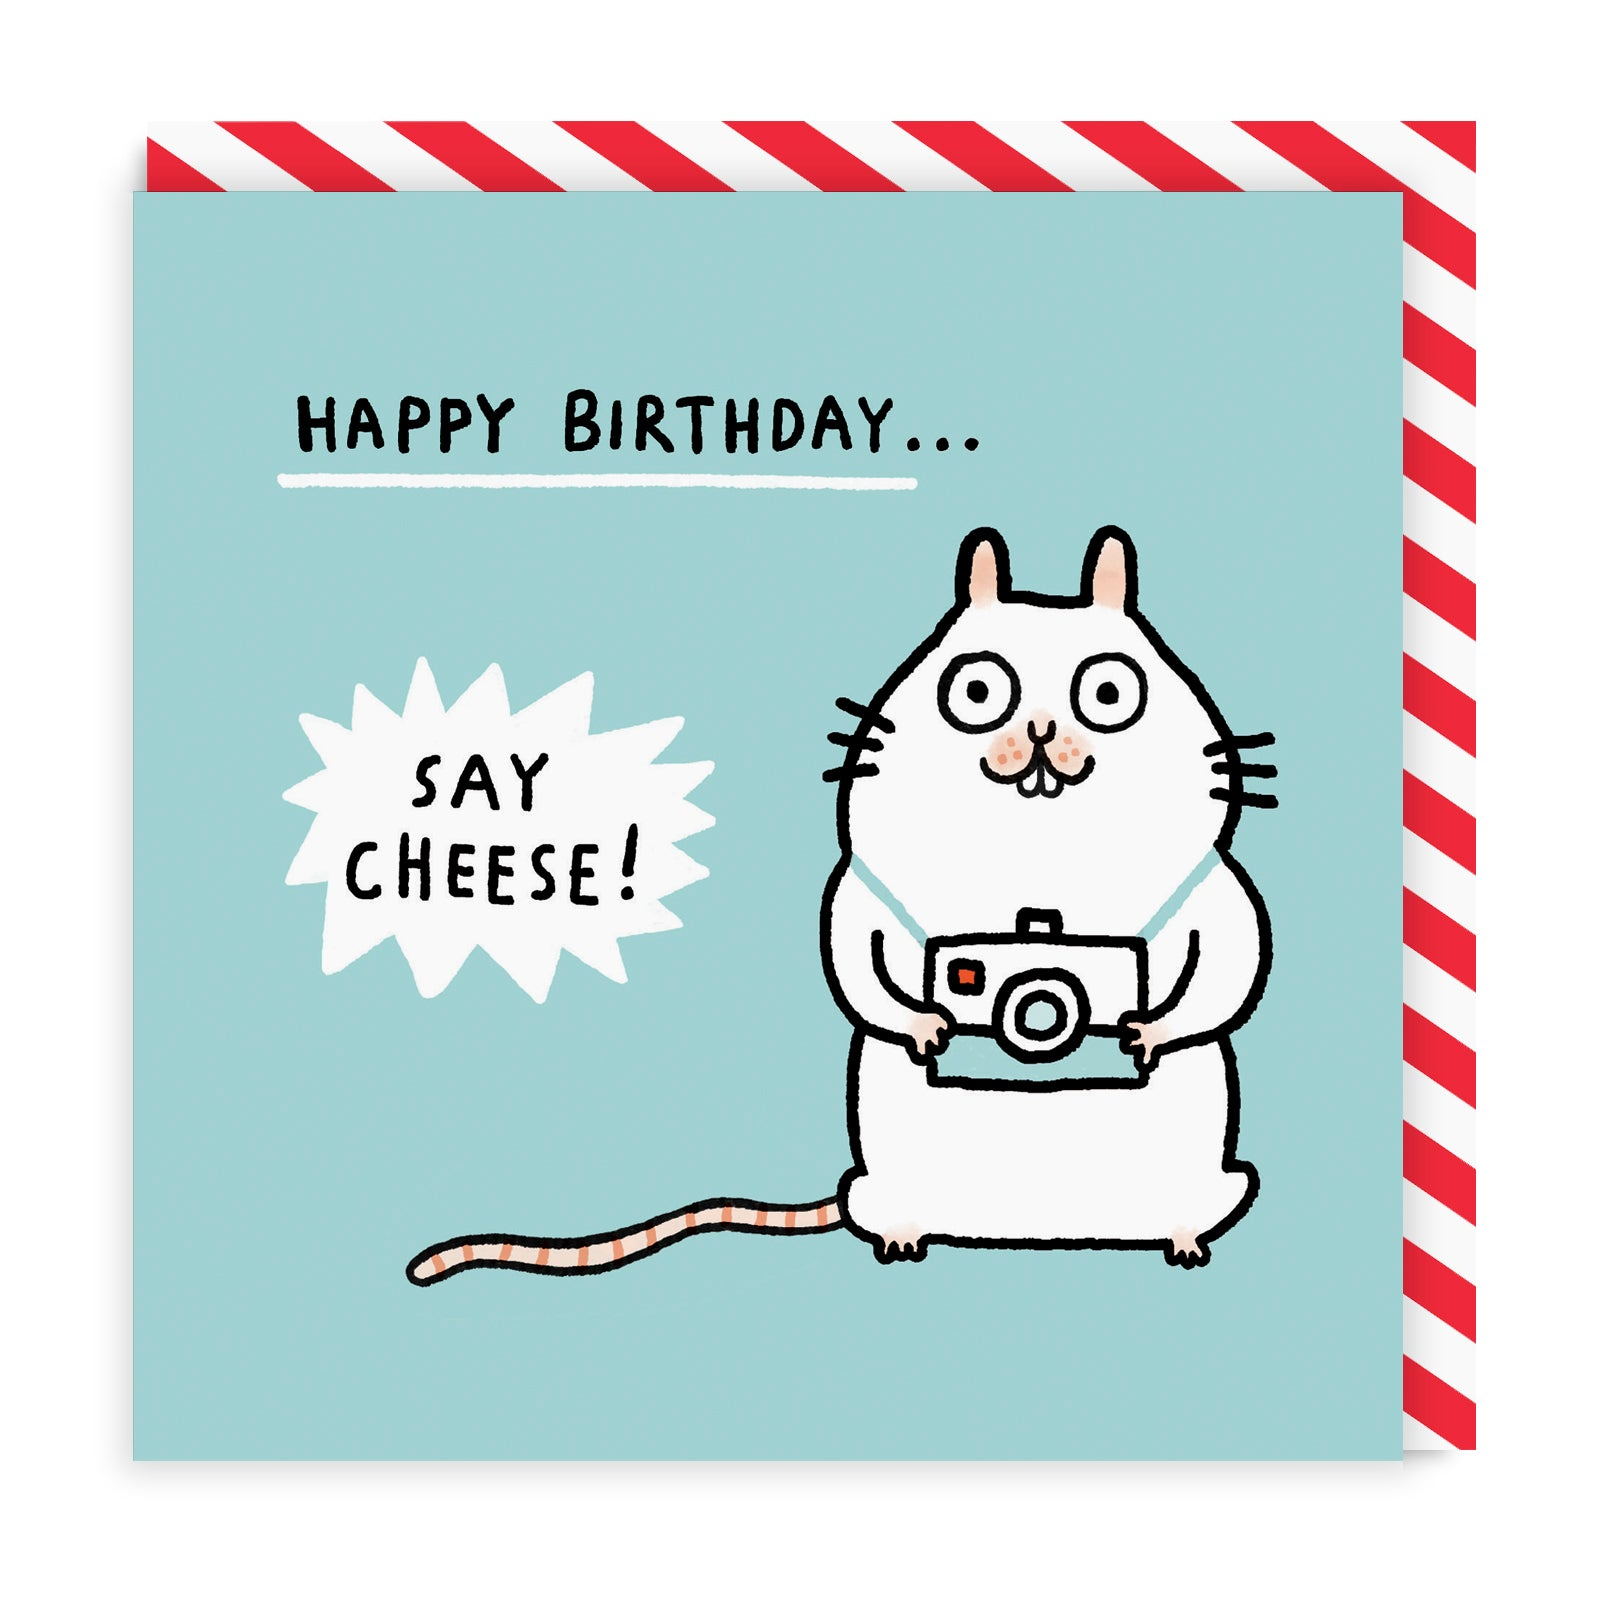 Say Cheese! Happy Birthday! Square Greeting Card